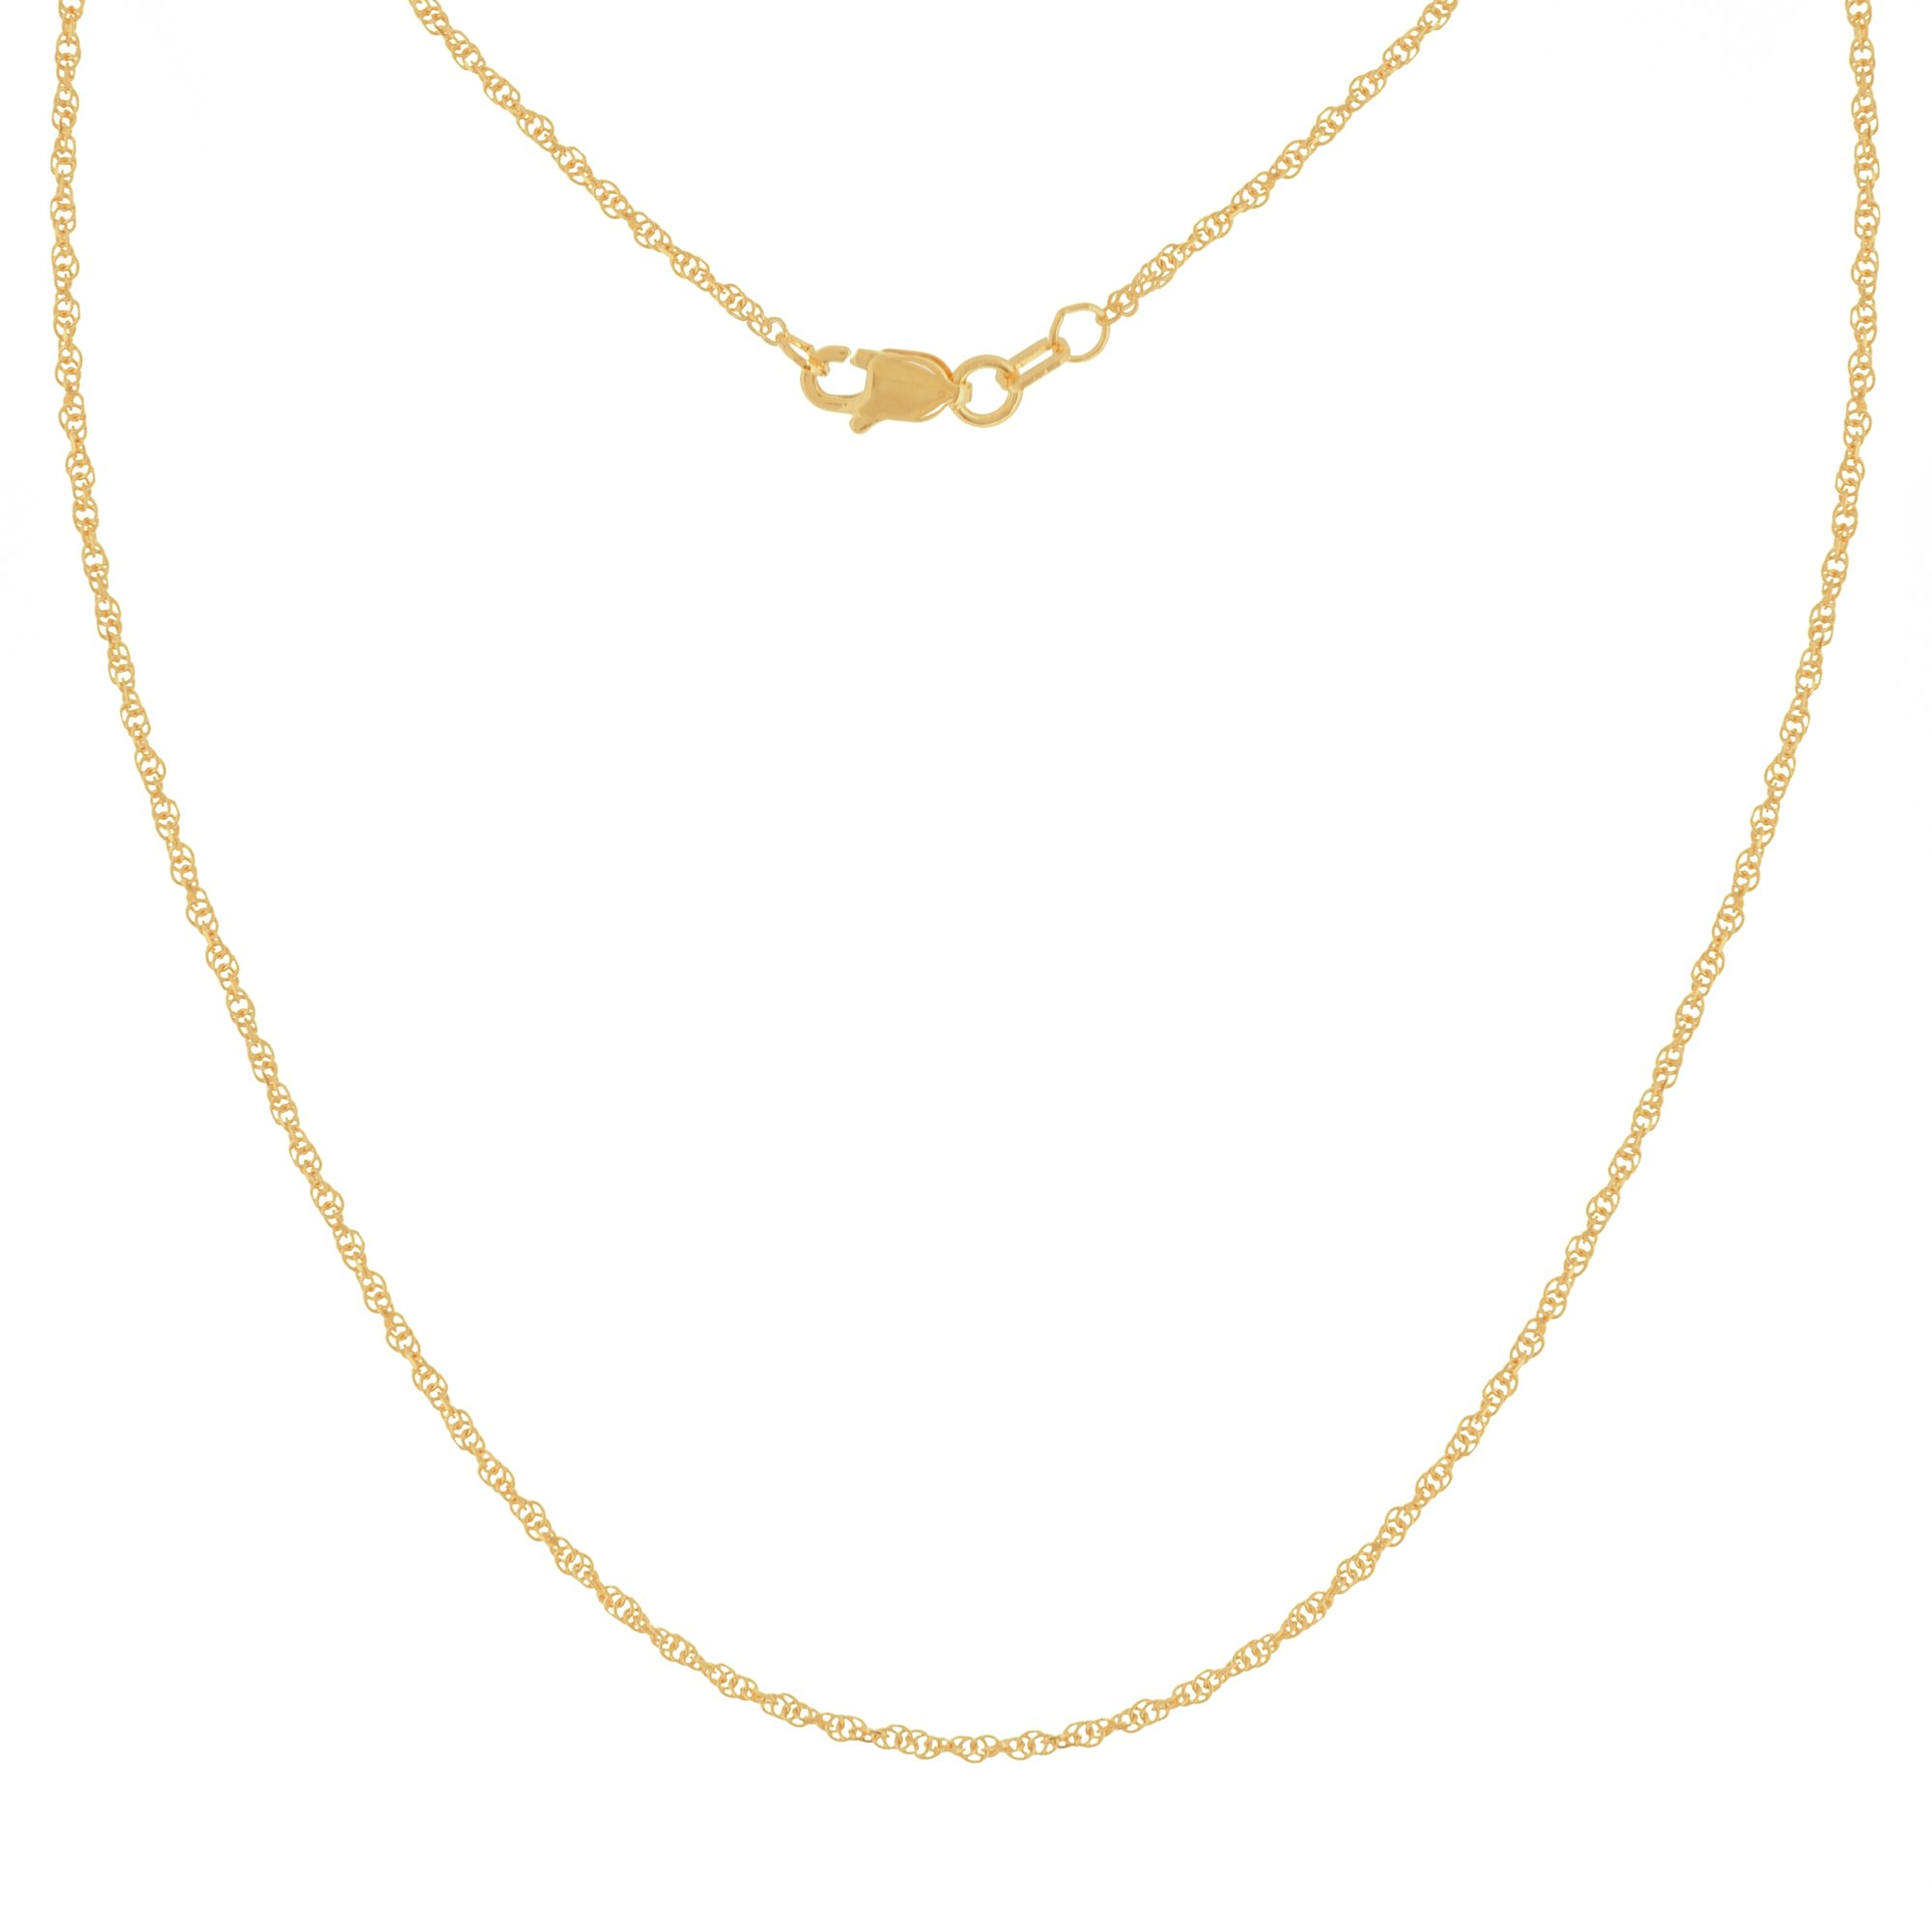 ROPE CHAIN, 10KT GOLD DOUBLE ROPE DIAMOND CUT CHAIN 1.05MM WIDE , 18 INCHES LONG by DiamondJewelryNY